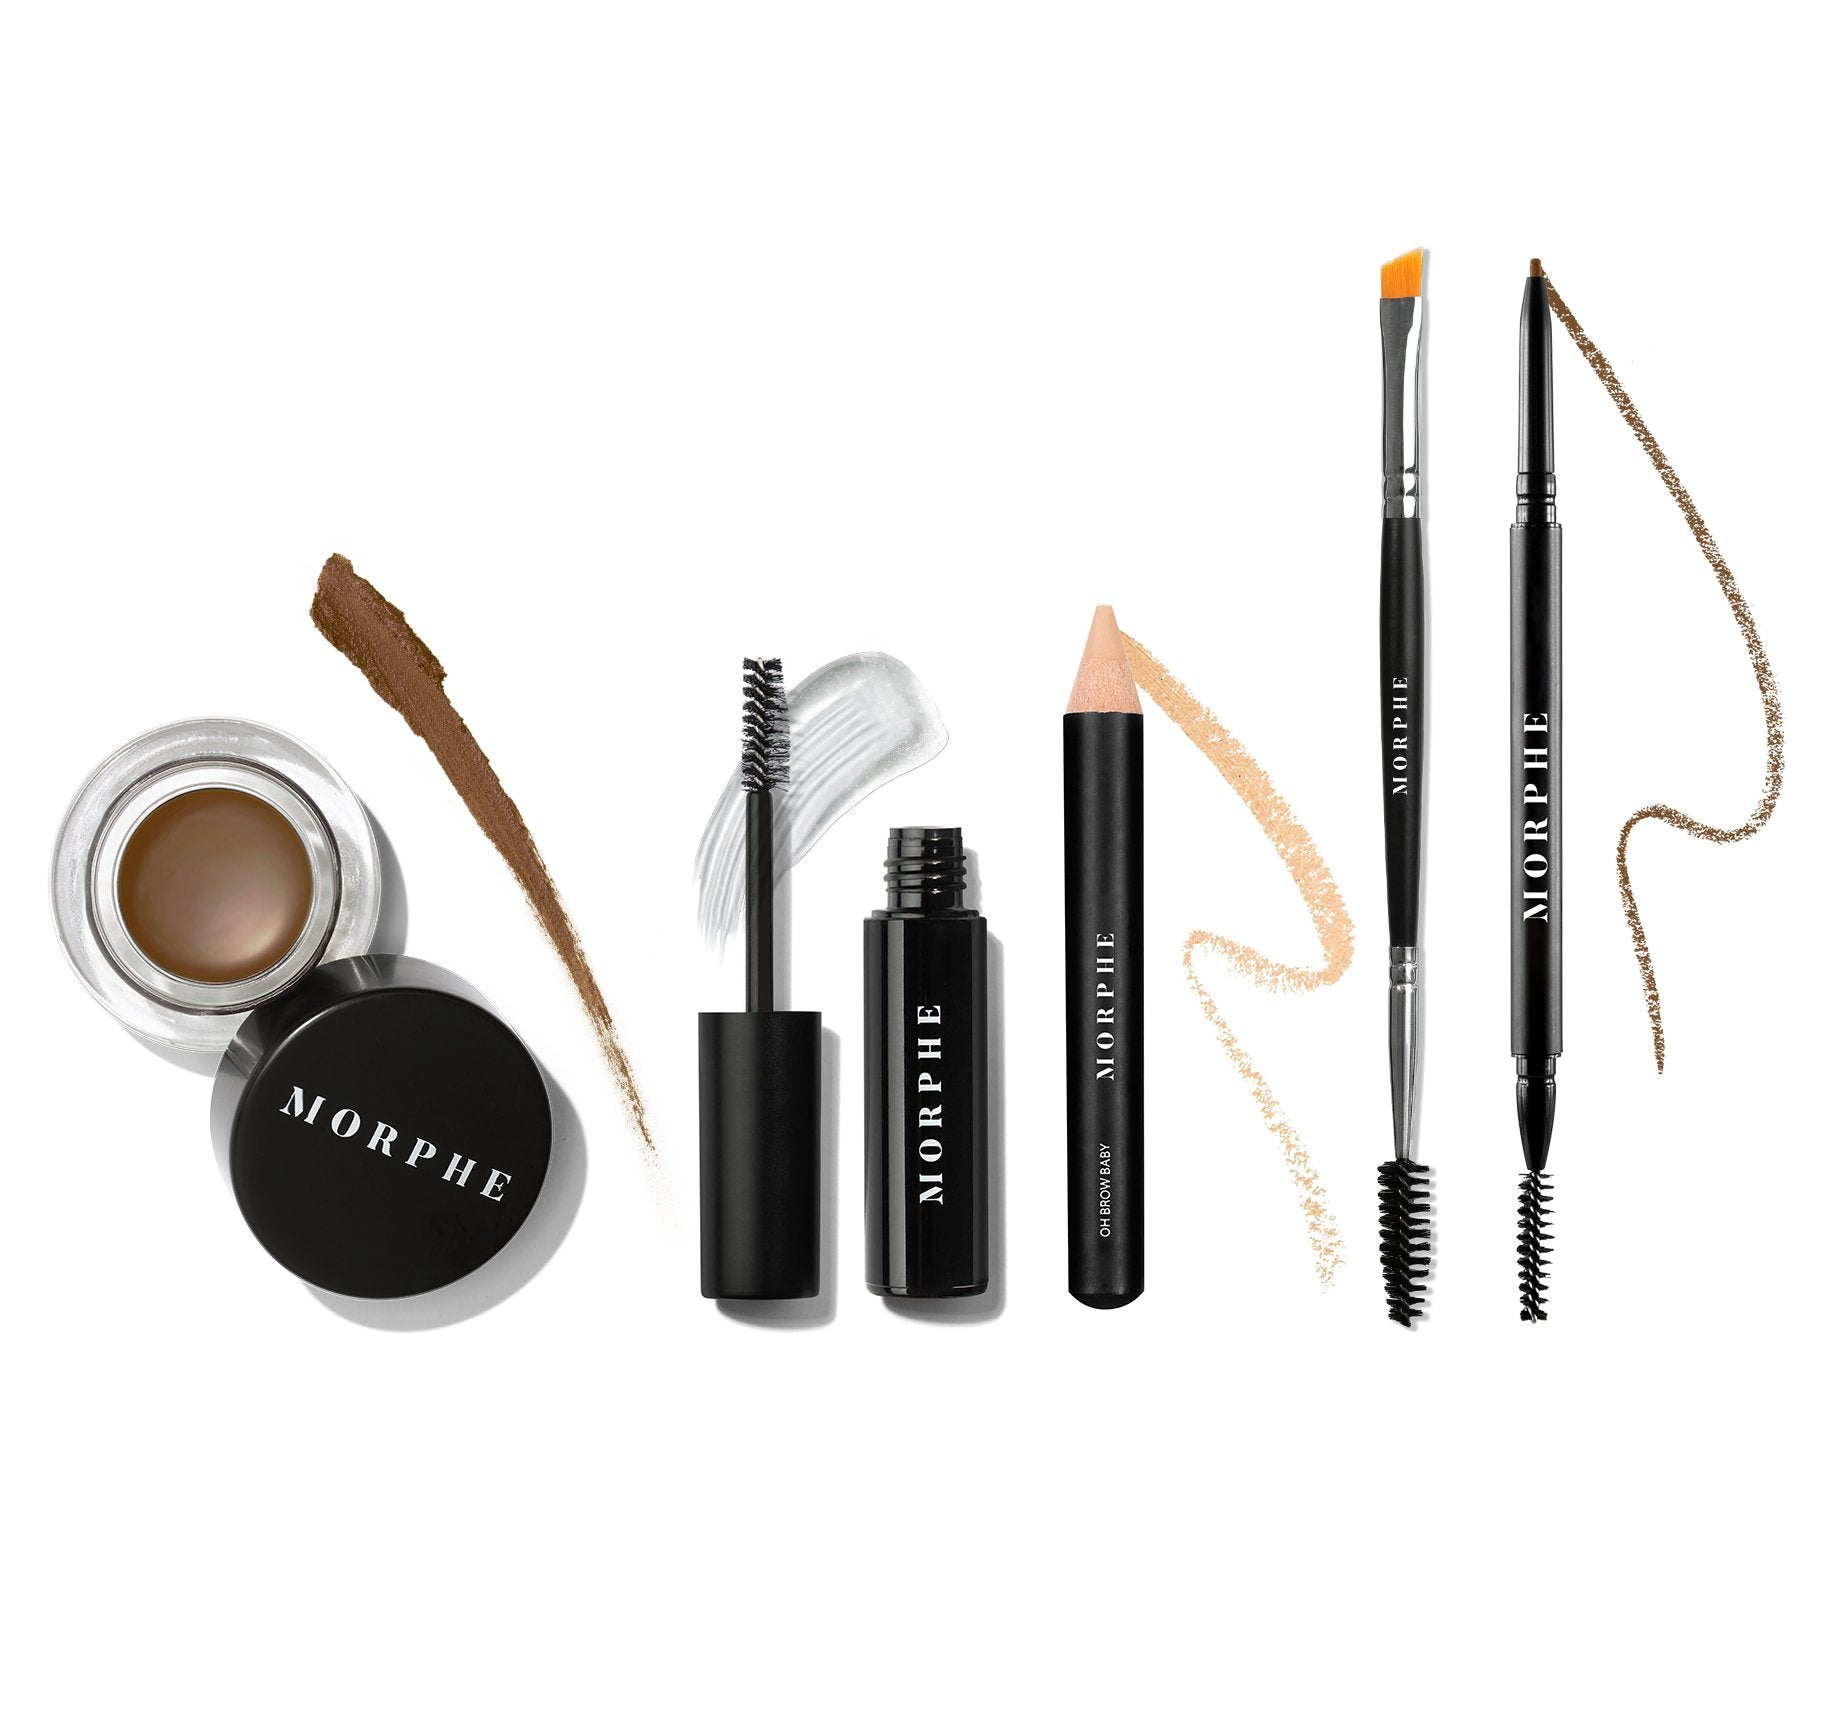 ARCH OBSESSIONS BROW KIT - HAZELNUT, view larger image